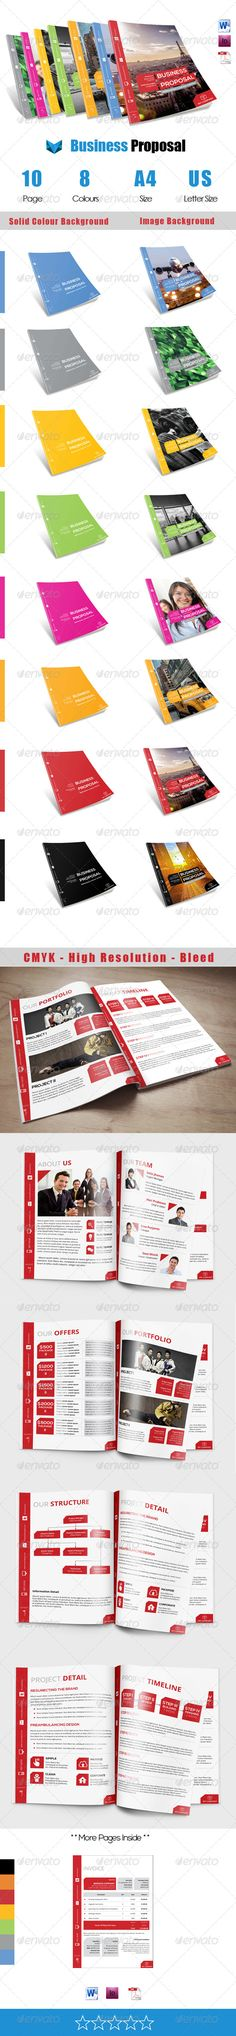 Web Design Business Proposal Business proposal, Proposal templates - graphic design invoice sample